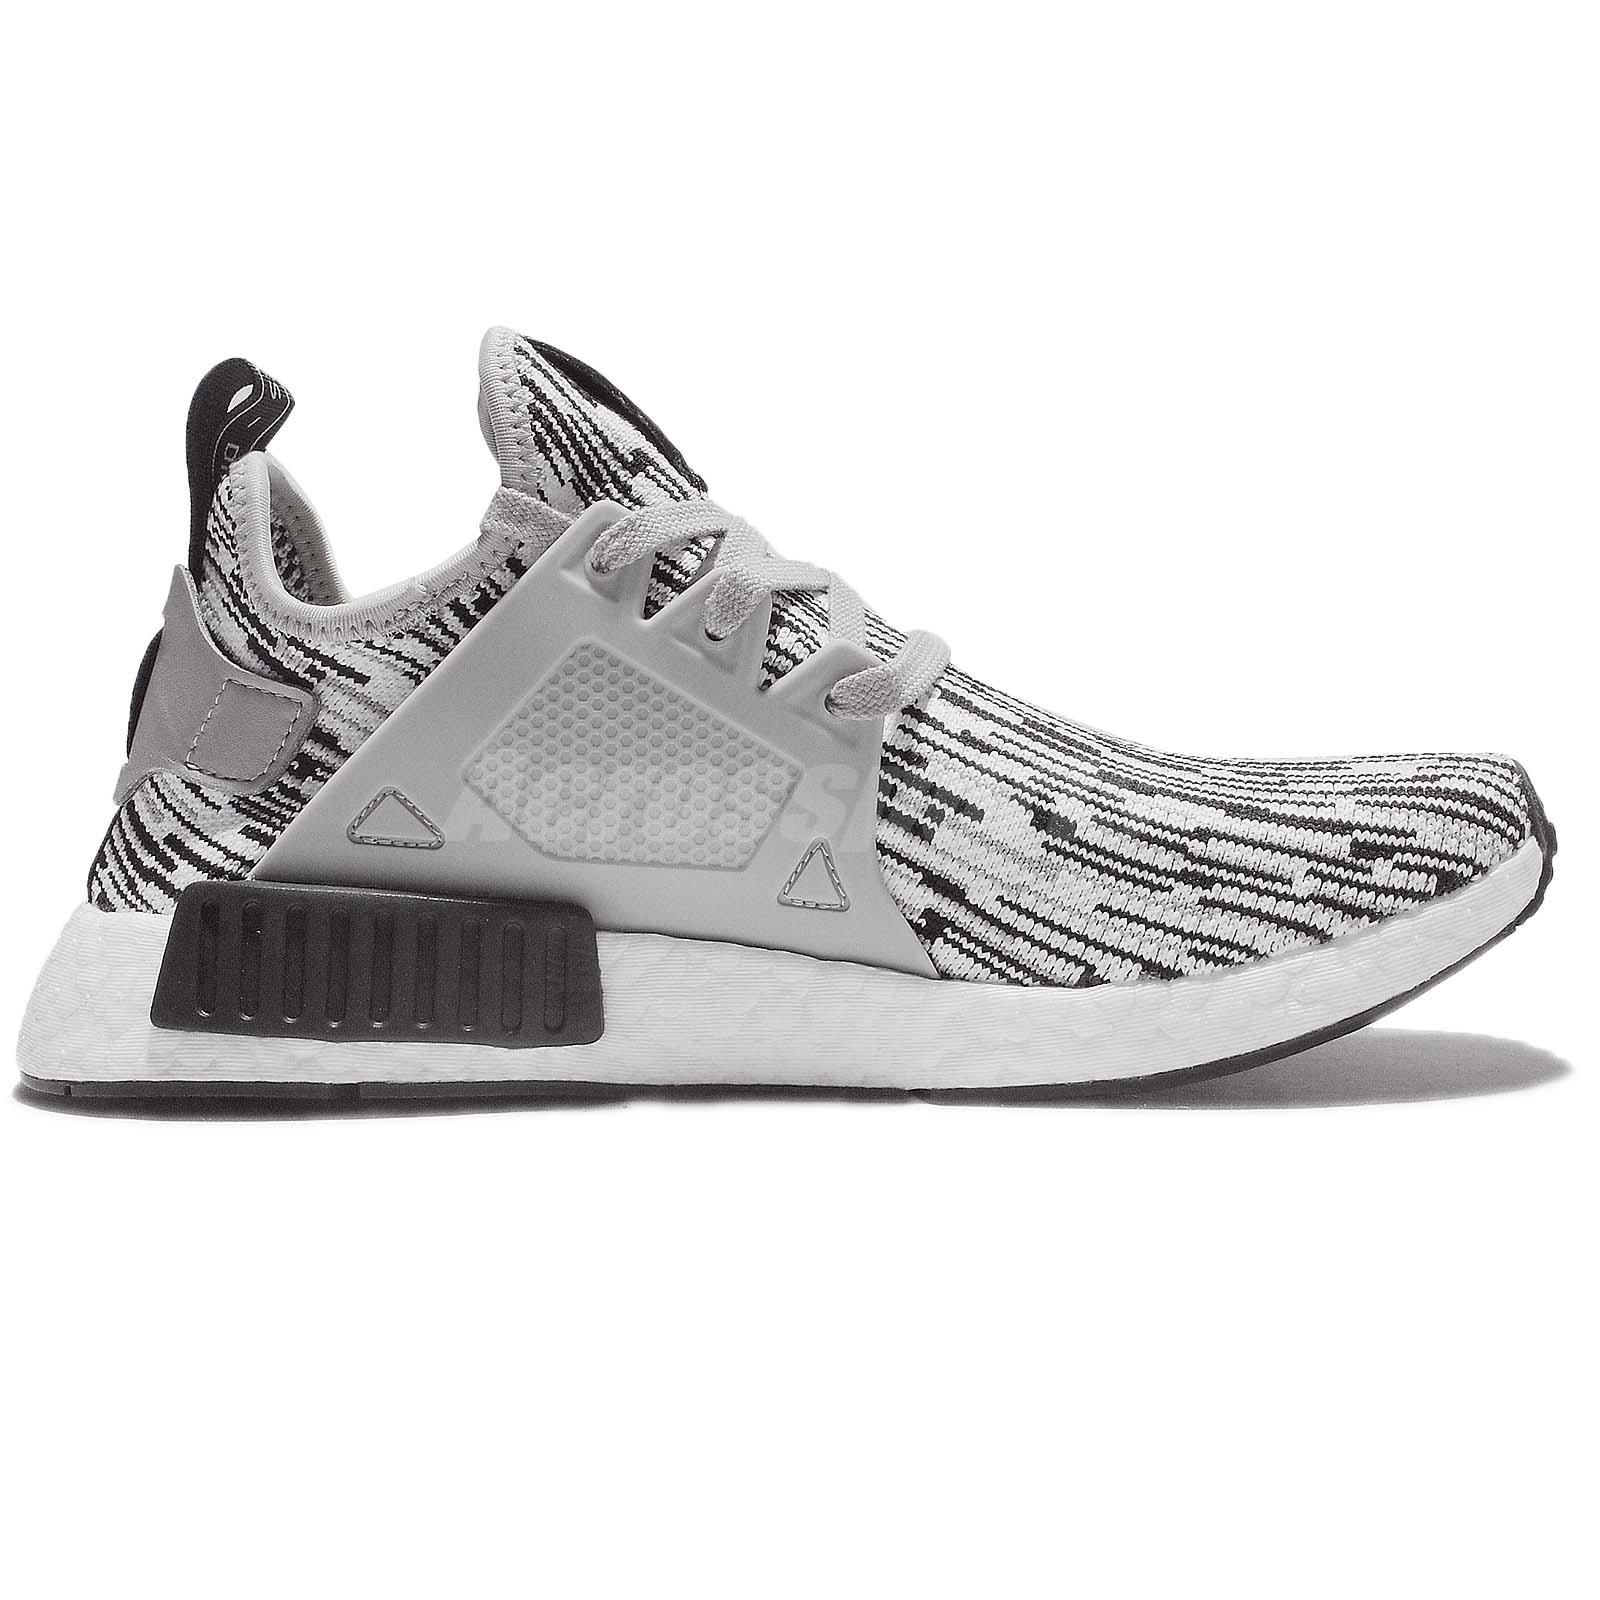 Adidas NMD XR1 PK Womens Primeknit Glitch Navy BB3685 US